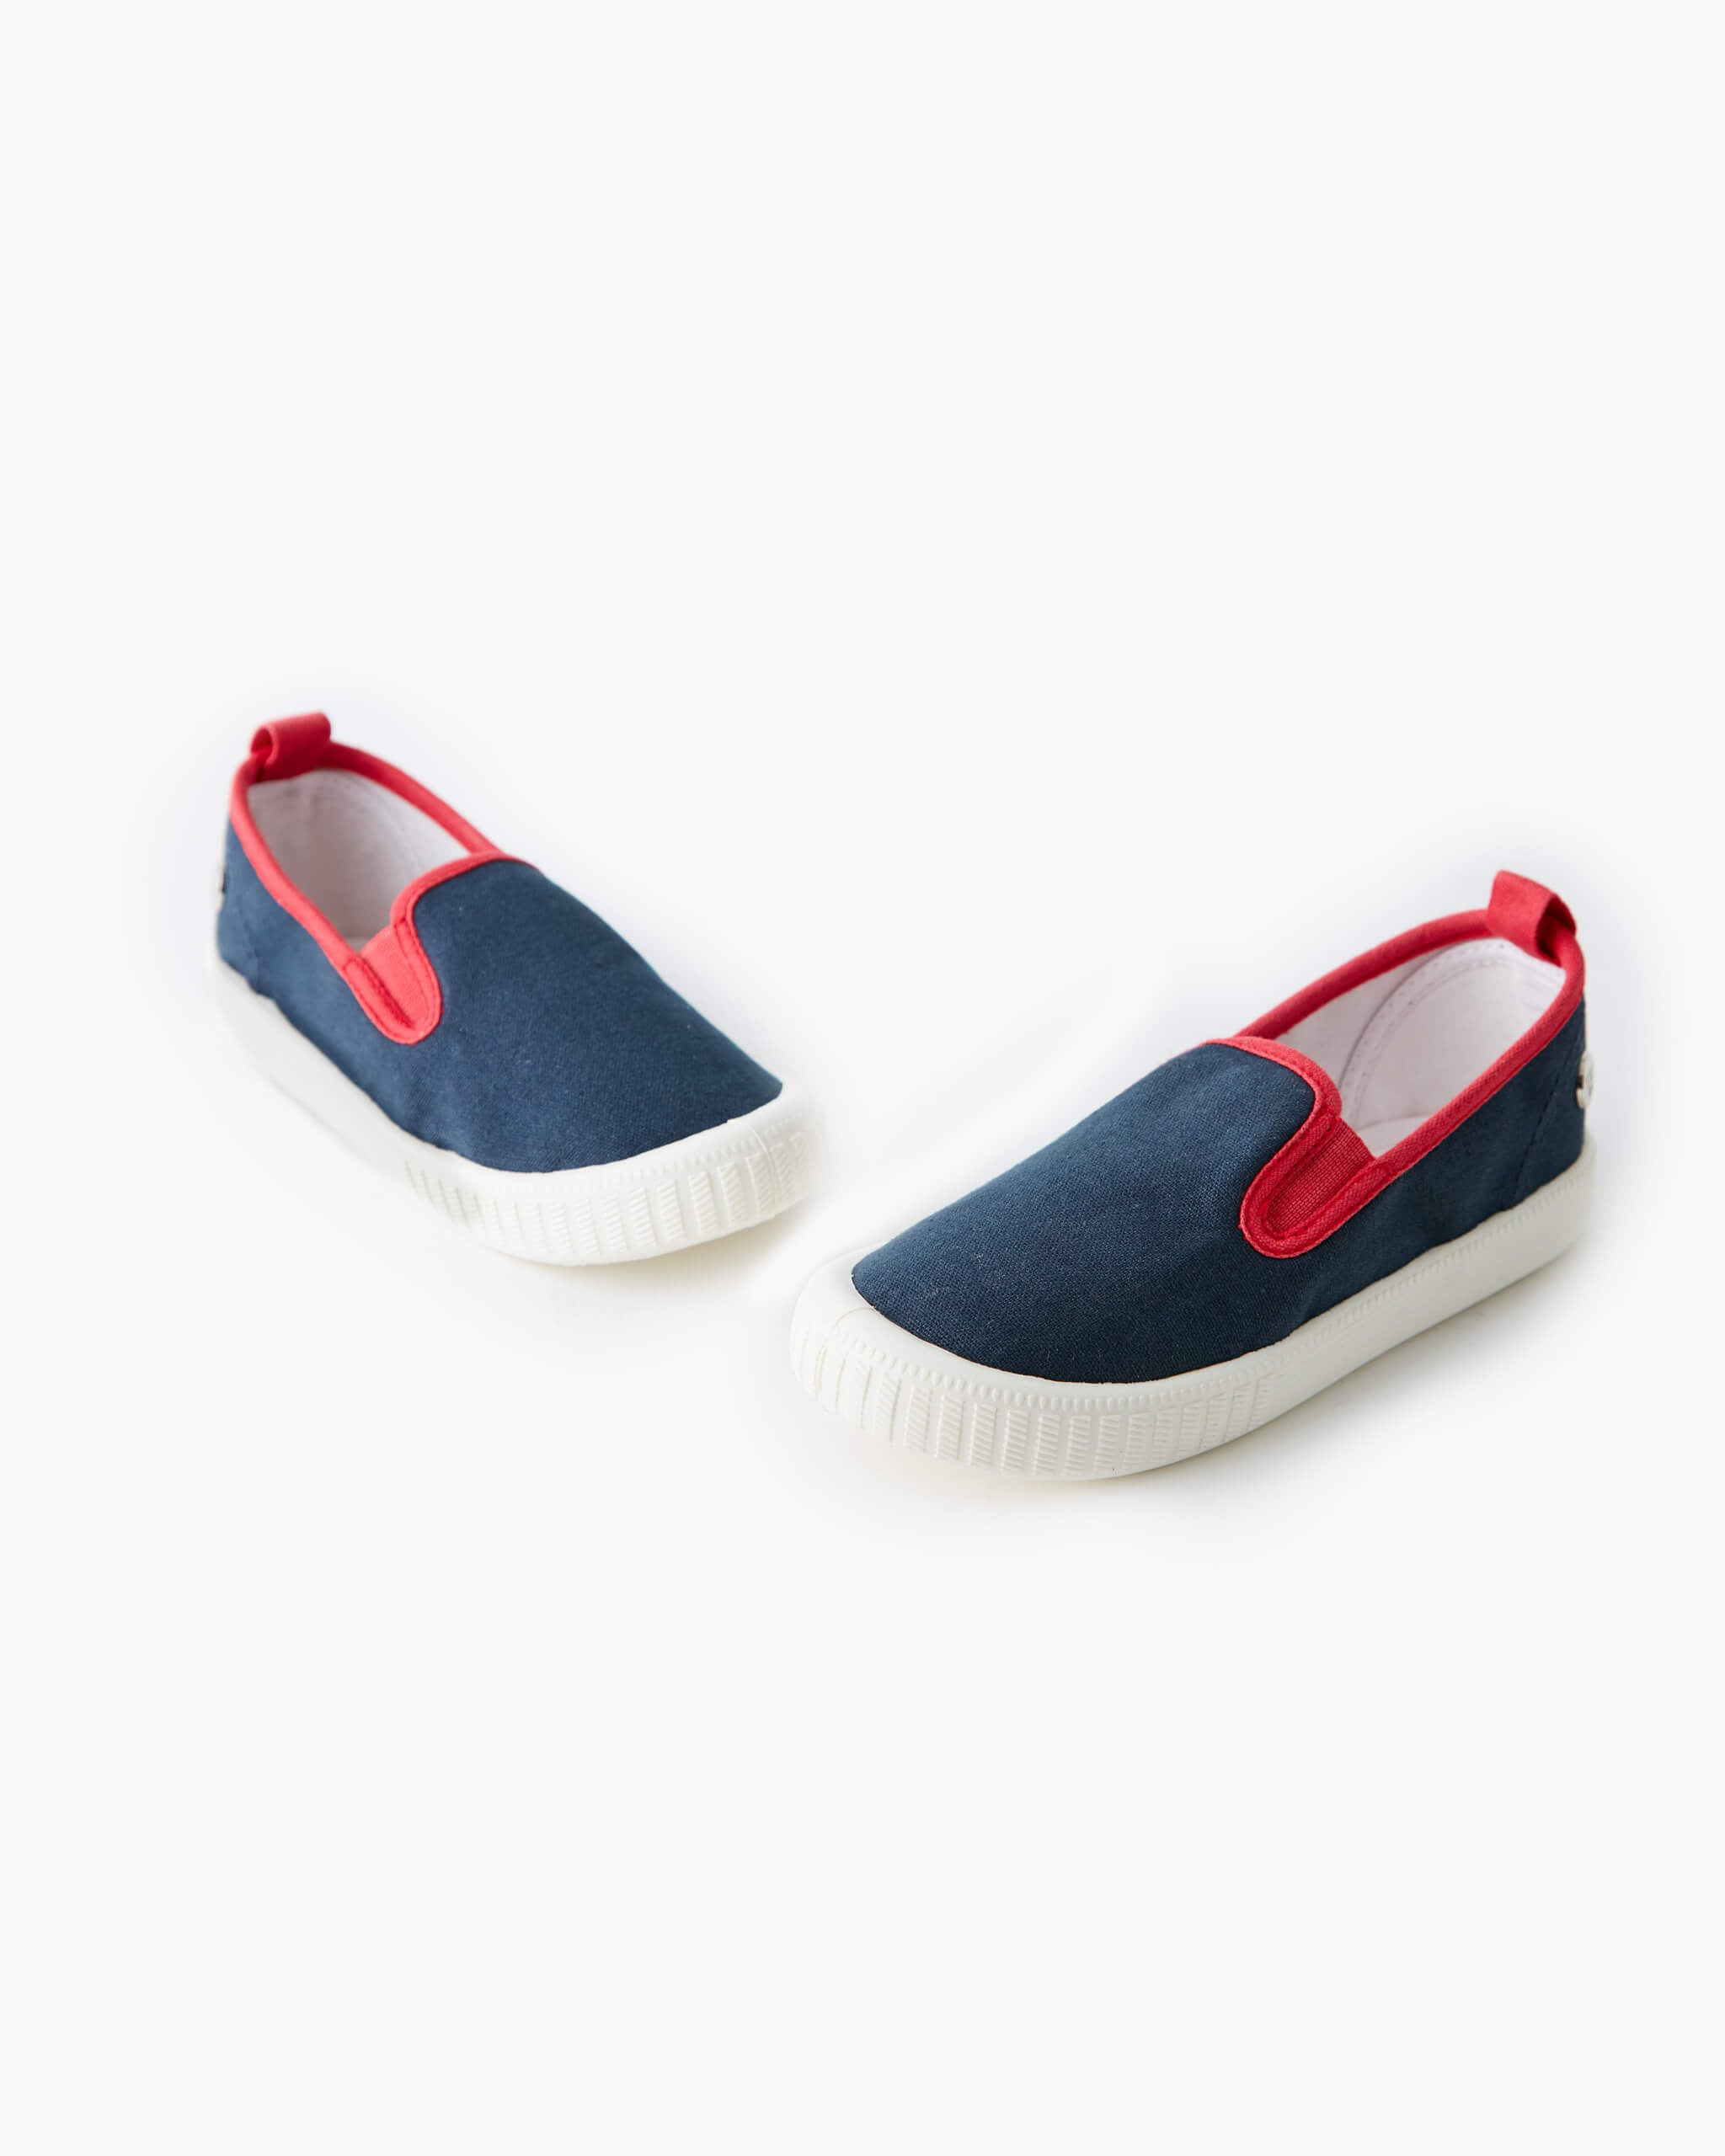 Warehouse Sale Canvas Charlie - Navy Red